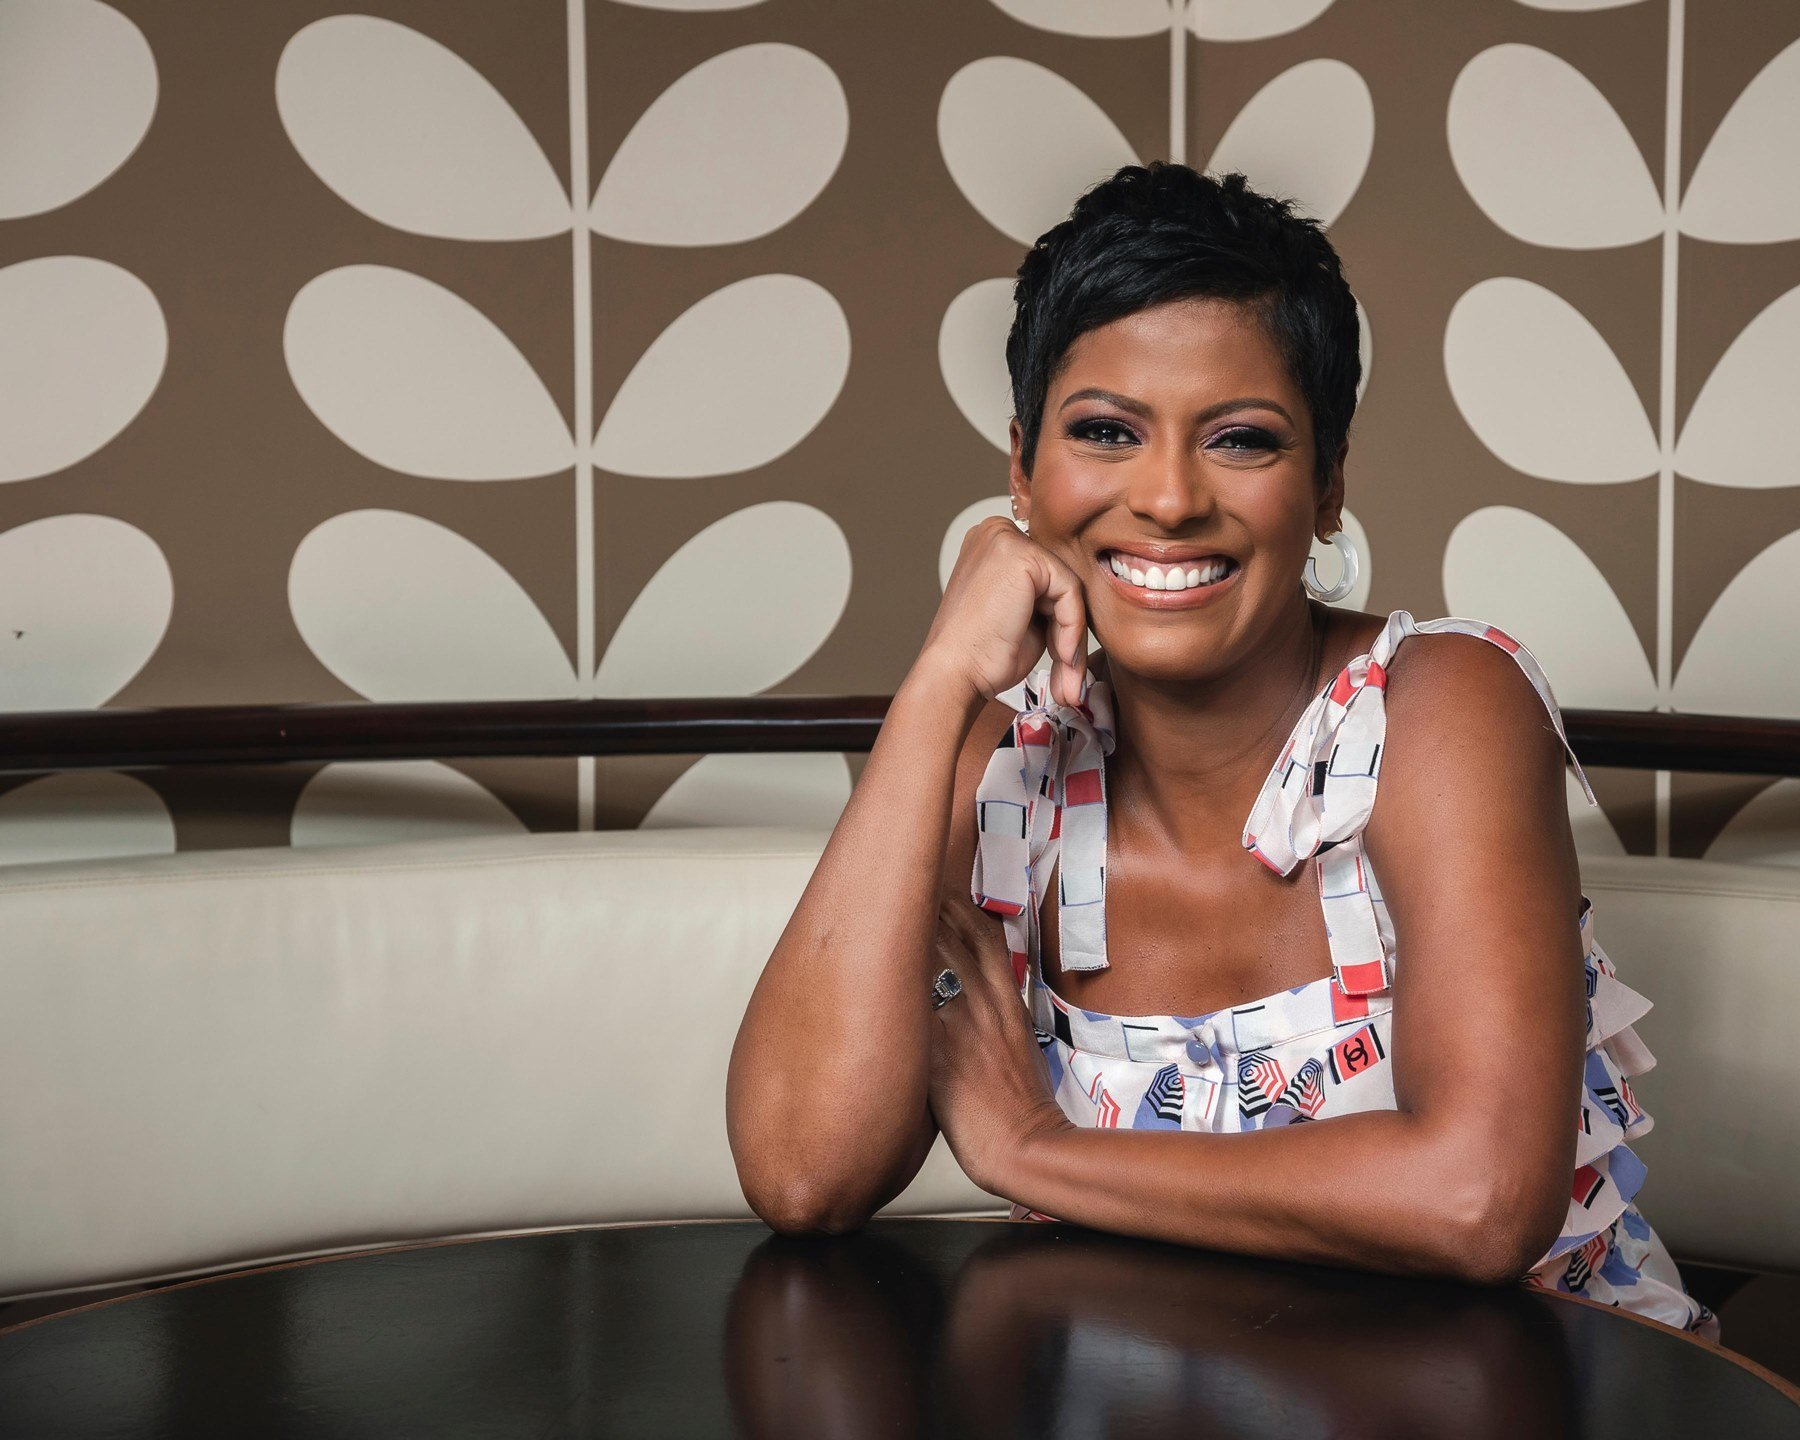 Tamron Hall Turns To The Sweet Side Of Life After Major Controversy With A Photo Where She And Baby Moses Are Rocking Rompers